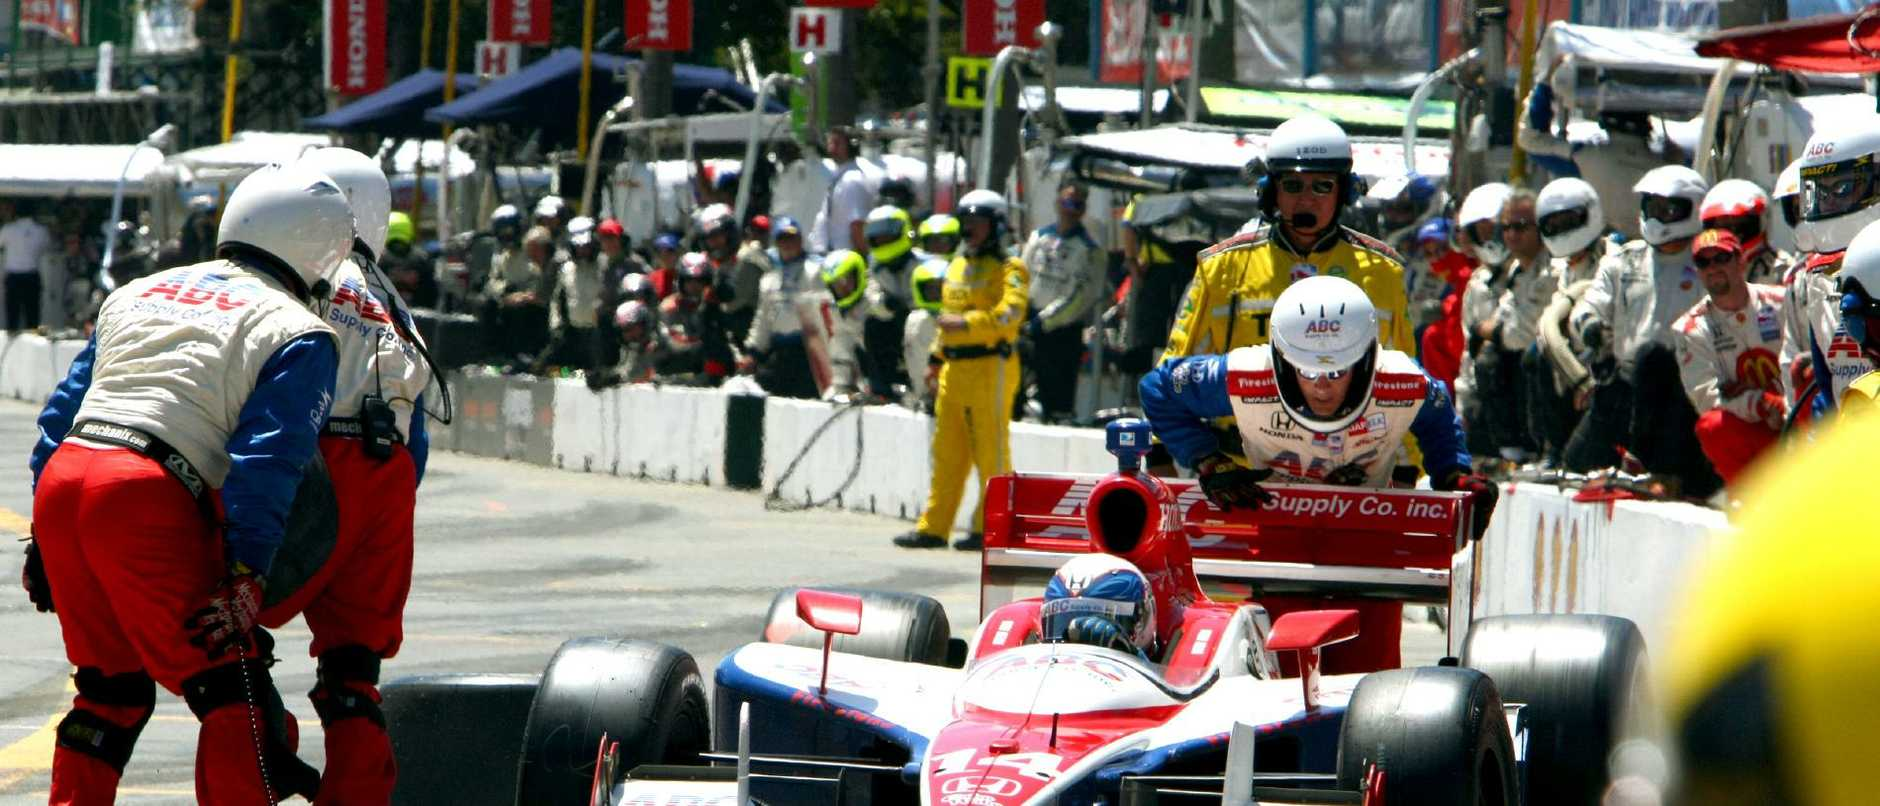 Nikon Indy 300 race from Surfers Paradise back in the days of IndyCars — the Premier Annastacia Palaszczuk has started courting the event's CEO to get a return to Surfers Paradise.